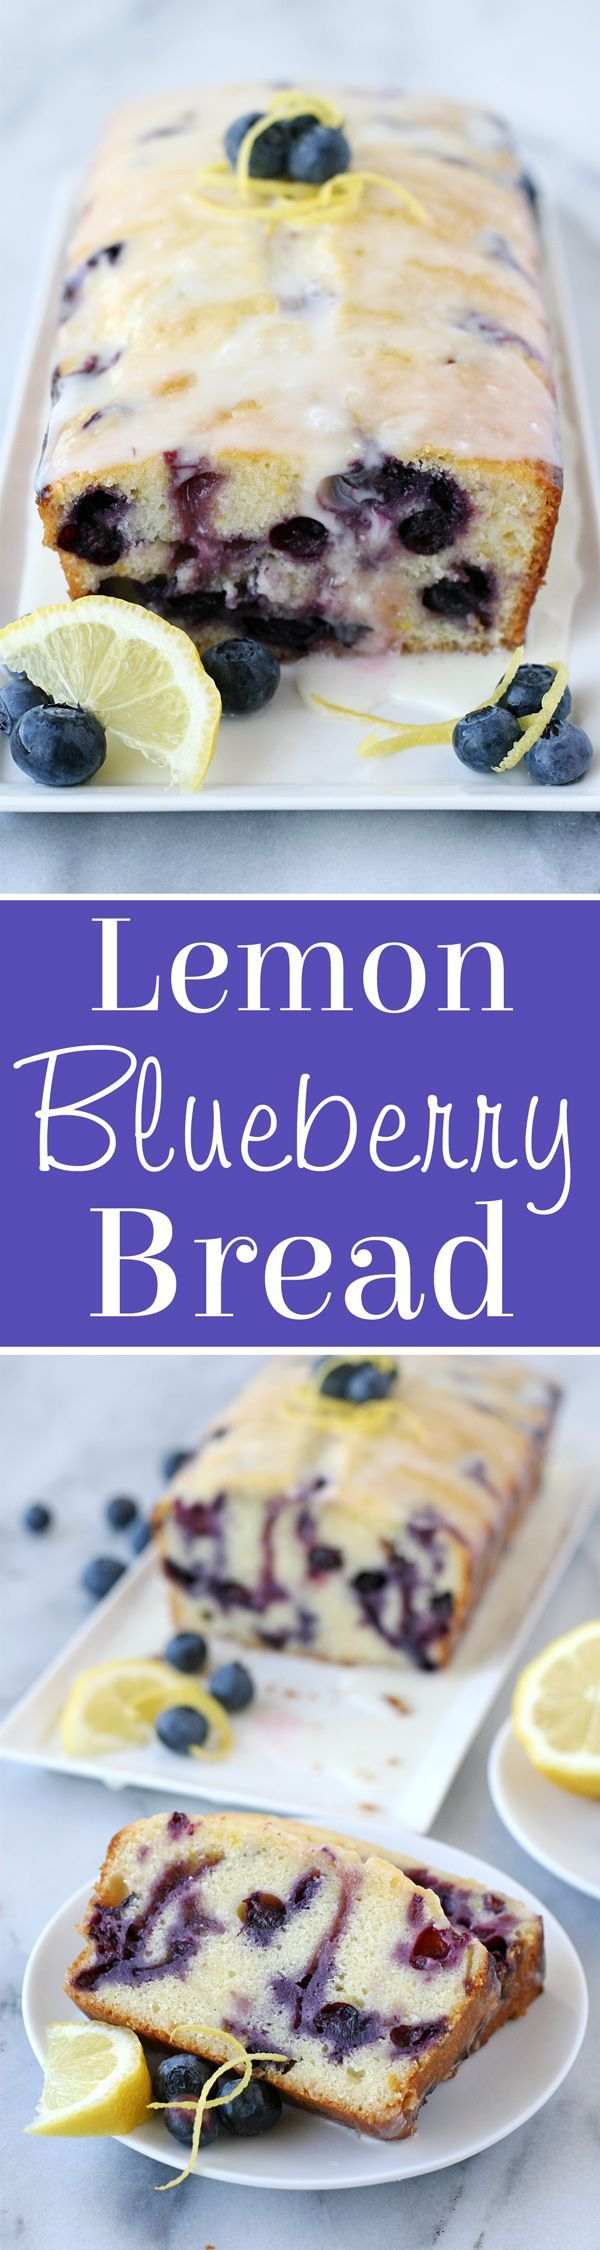 Sweet, tart and oh so delicious! Lemon Blueberry Bread